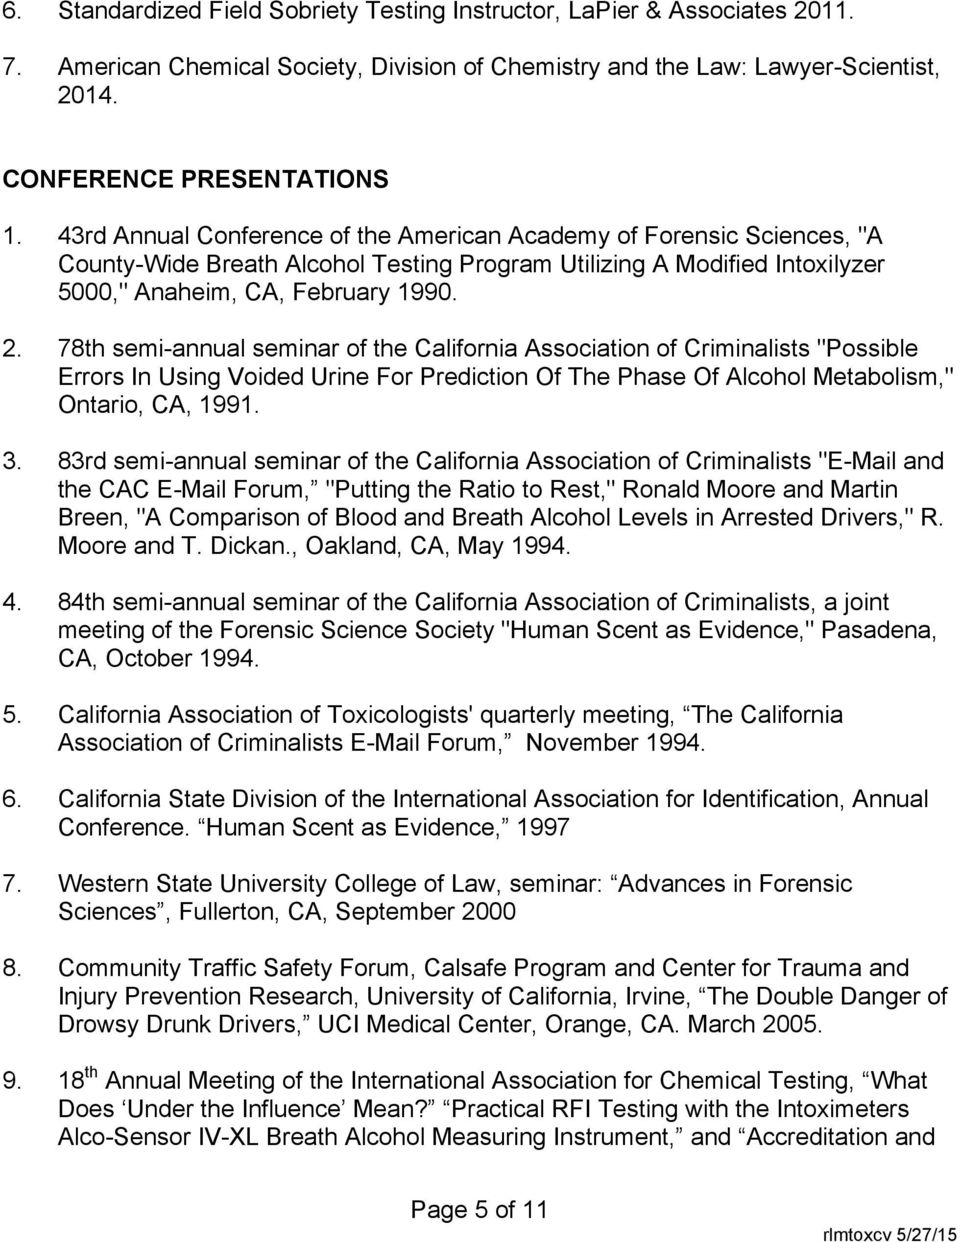 "78th semi-annual seminar of the California Association of Criminalists ""Possible Errors In Using Voided Urine For Prediction Of The Phase Of Alcohol Metabolism,"" Ontario, CA, 1991. 3."